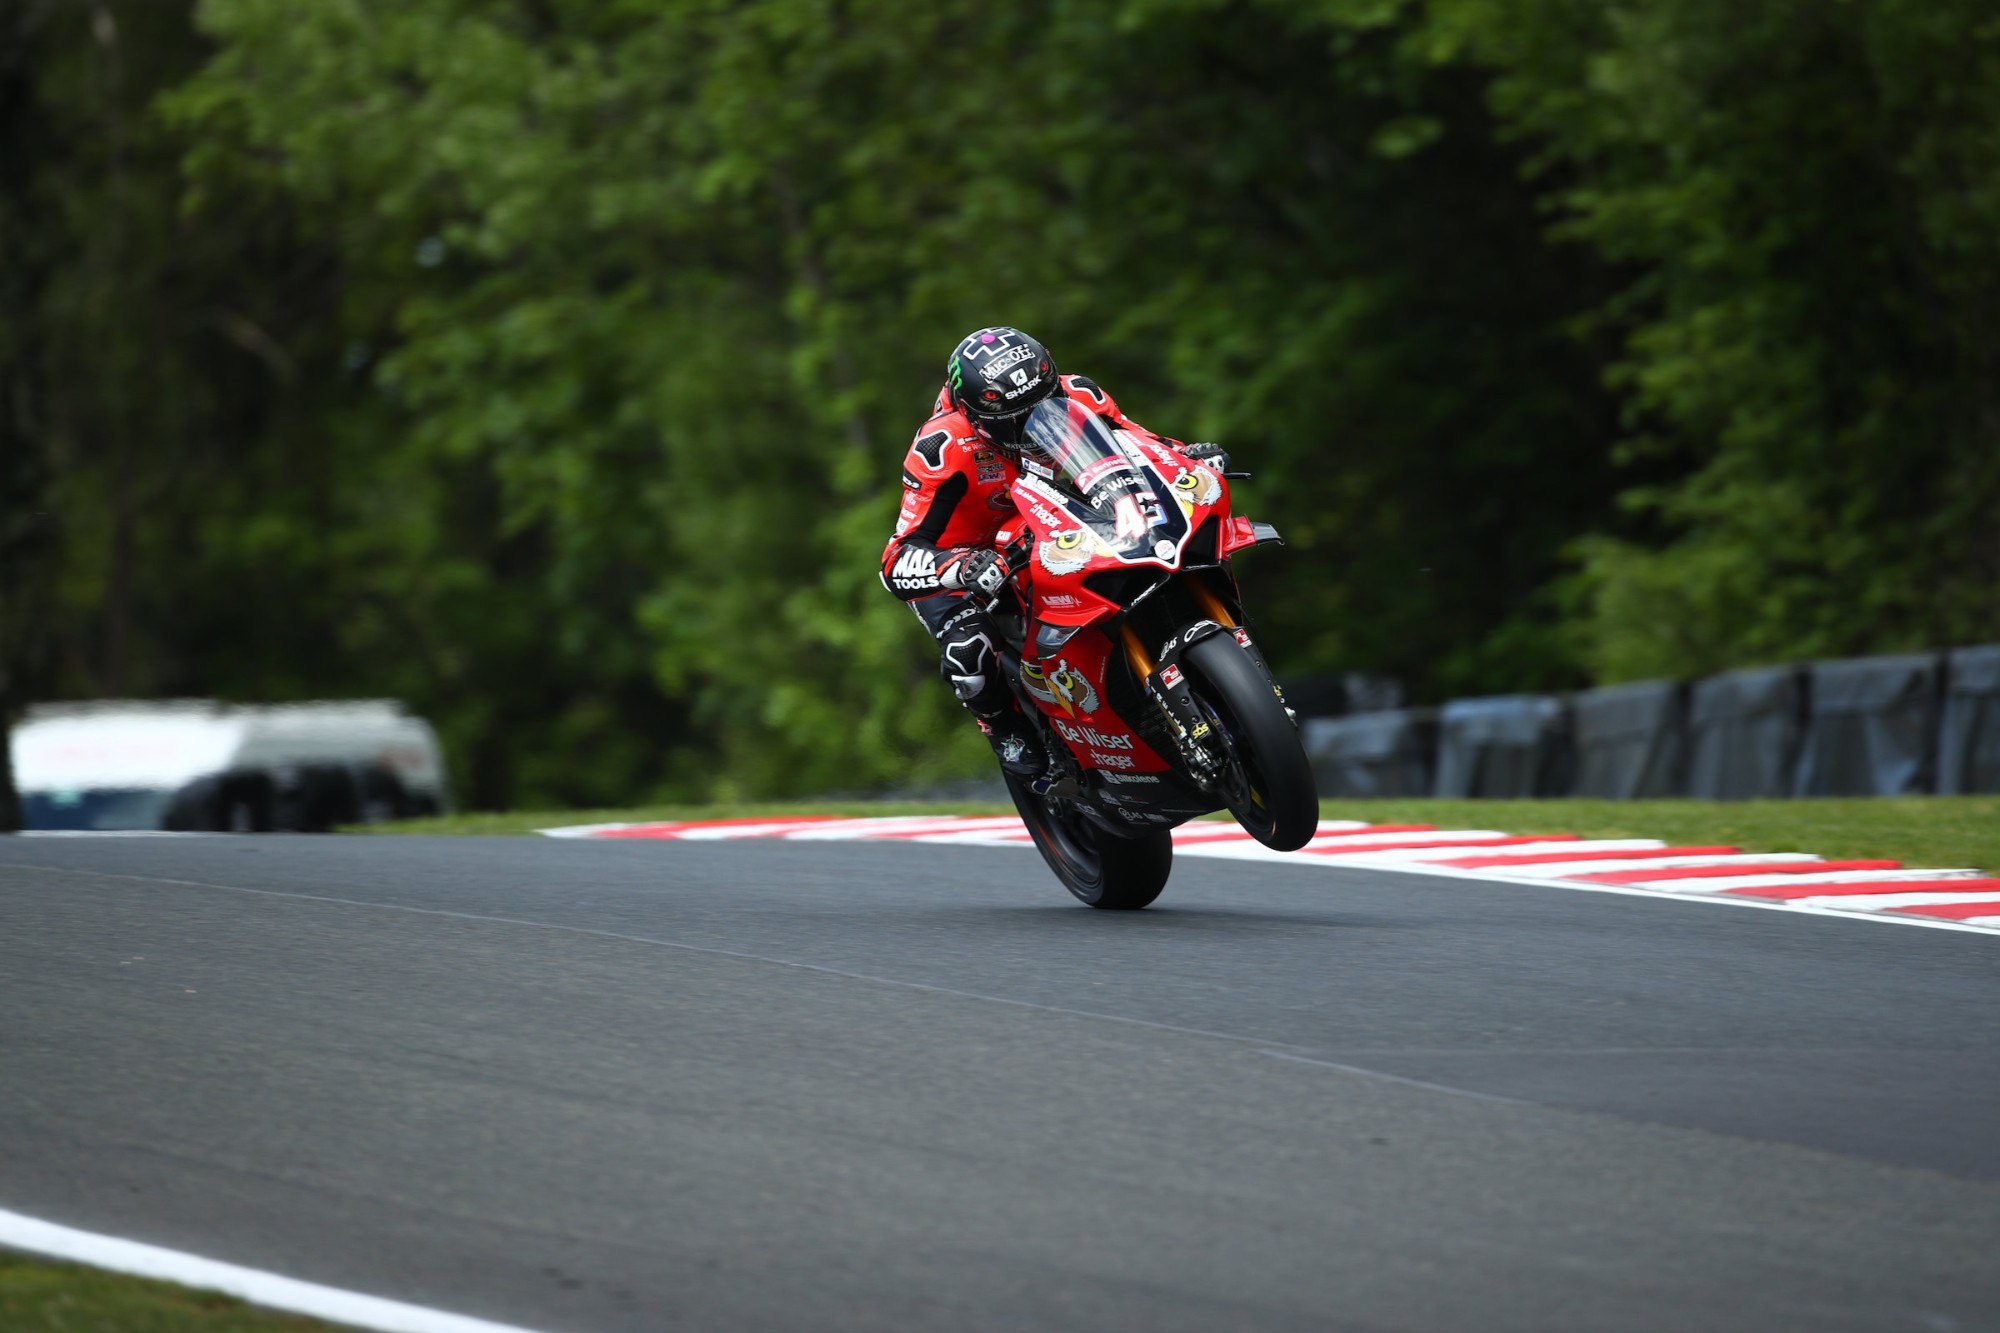 South Wales Superbikes >> British Superbike Be Wiser Ducati Team Previews This Coming